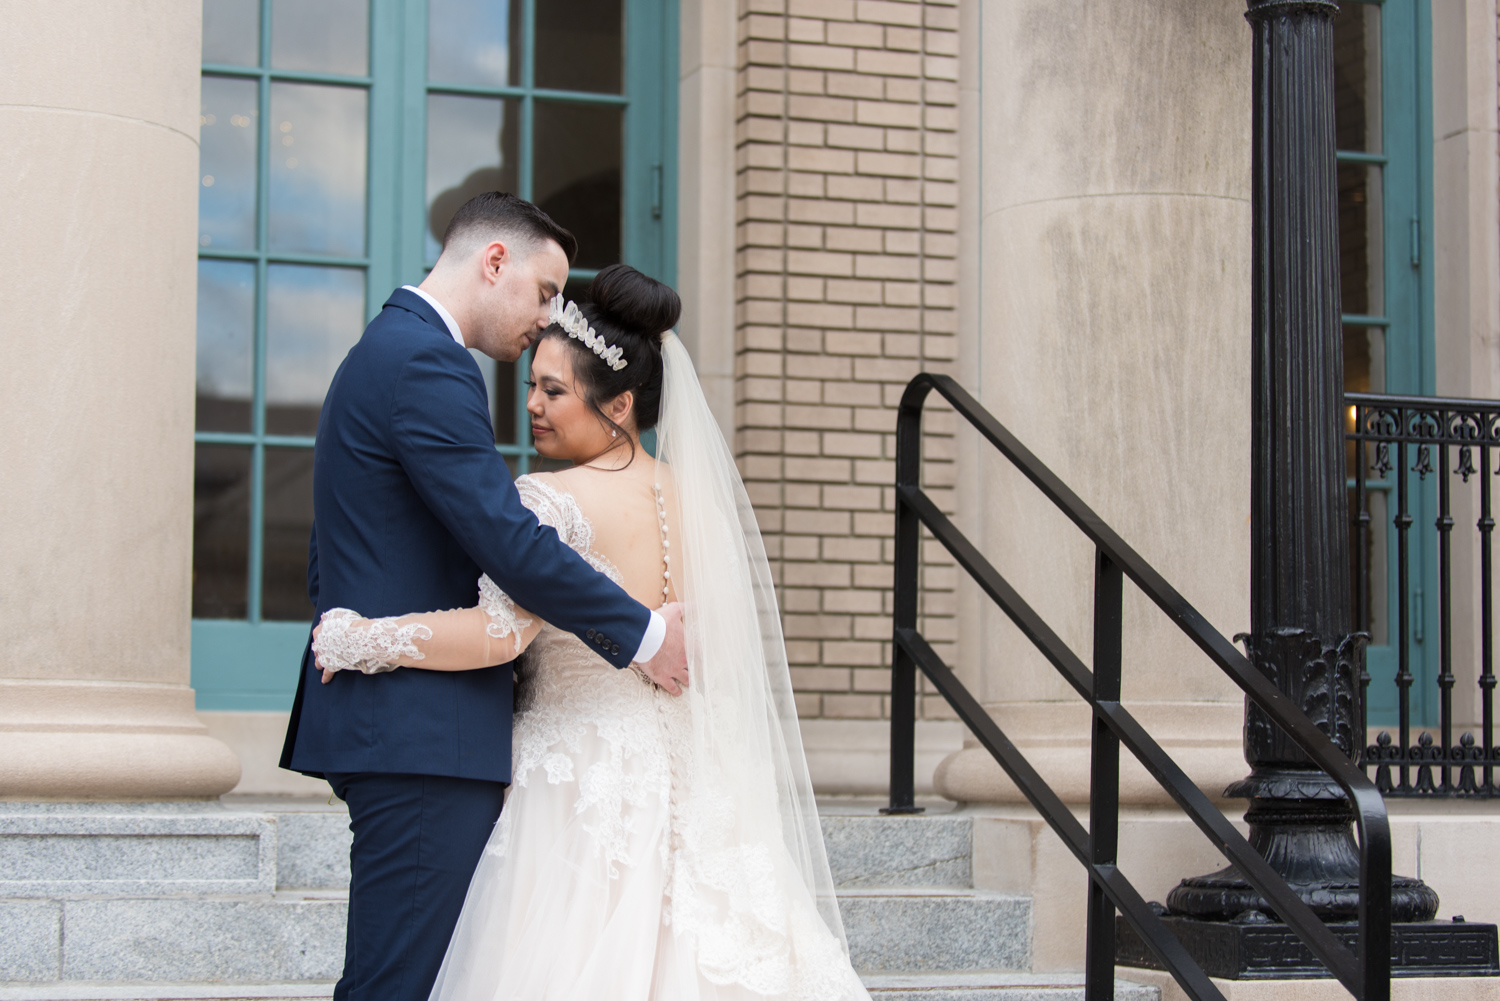 Rose Gold Wedding at Historic Post Office Virginia Harry Potter Themed Wedding-156.JPG